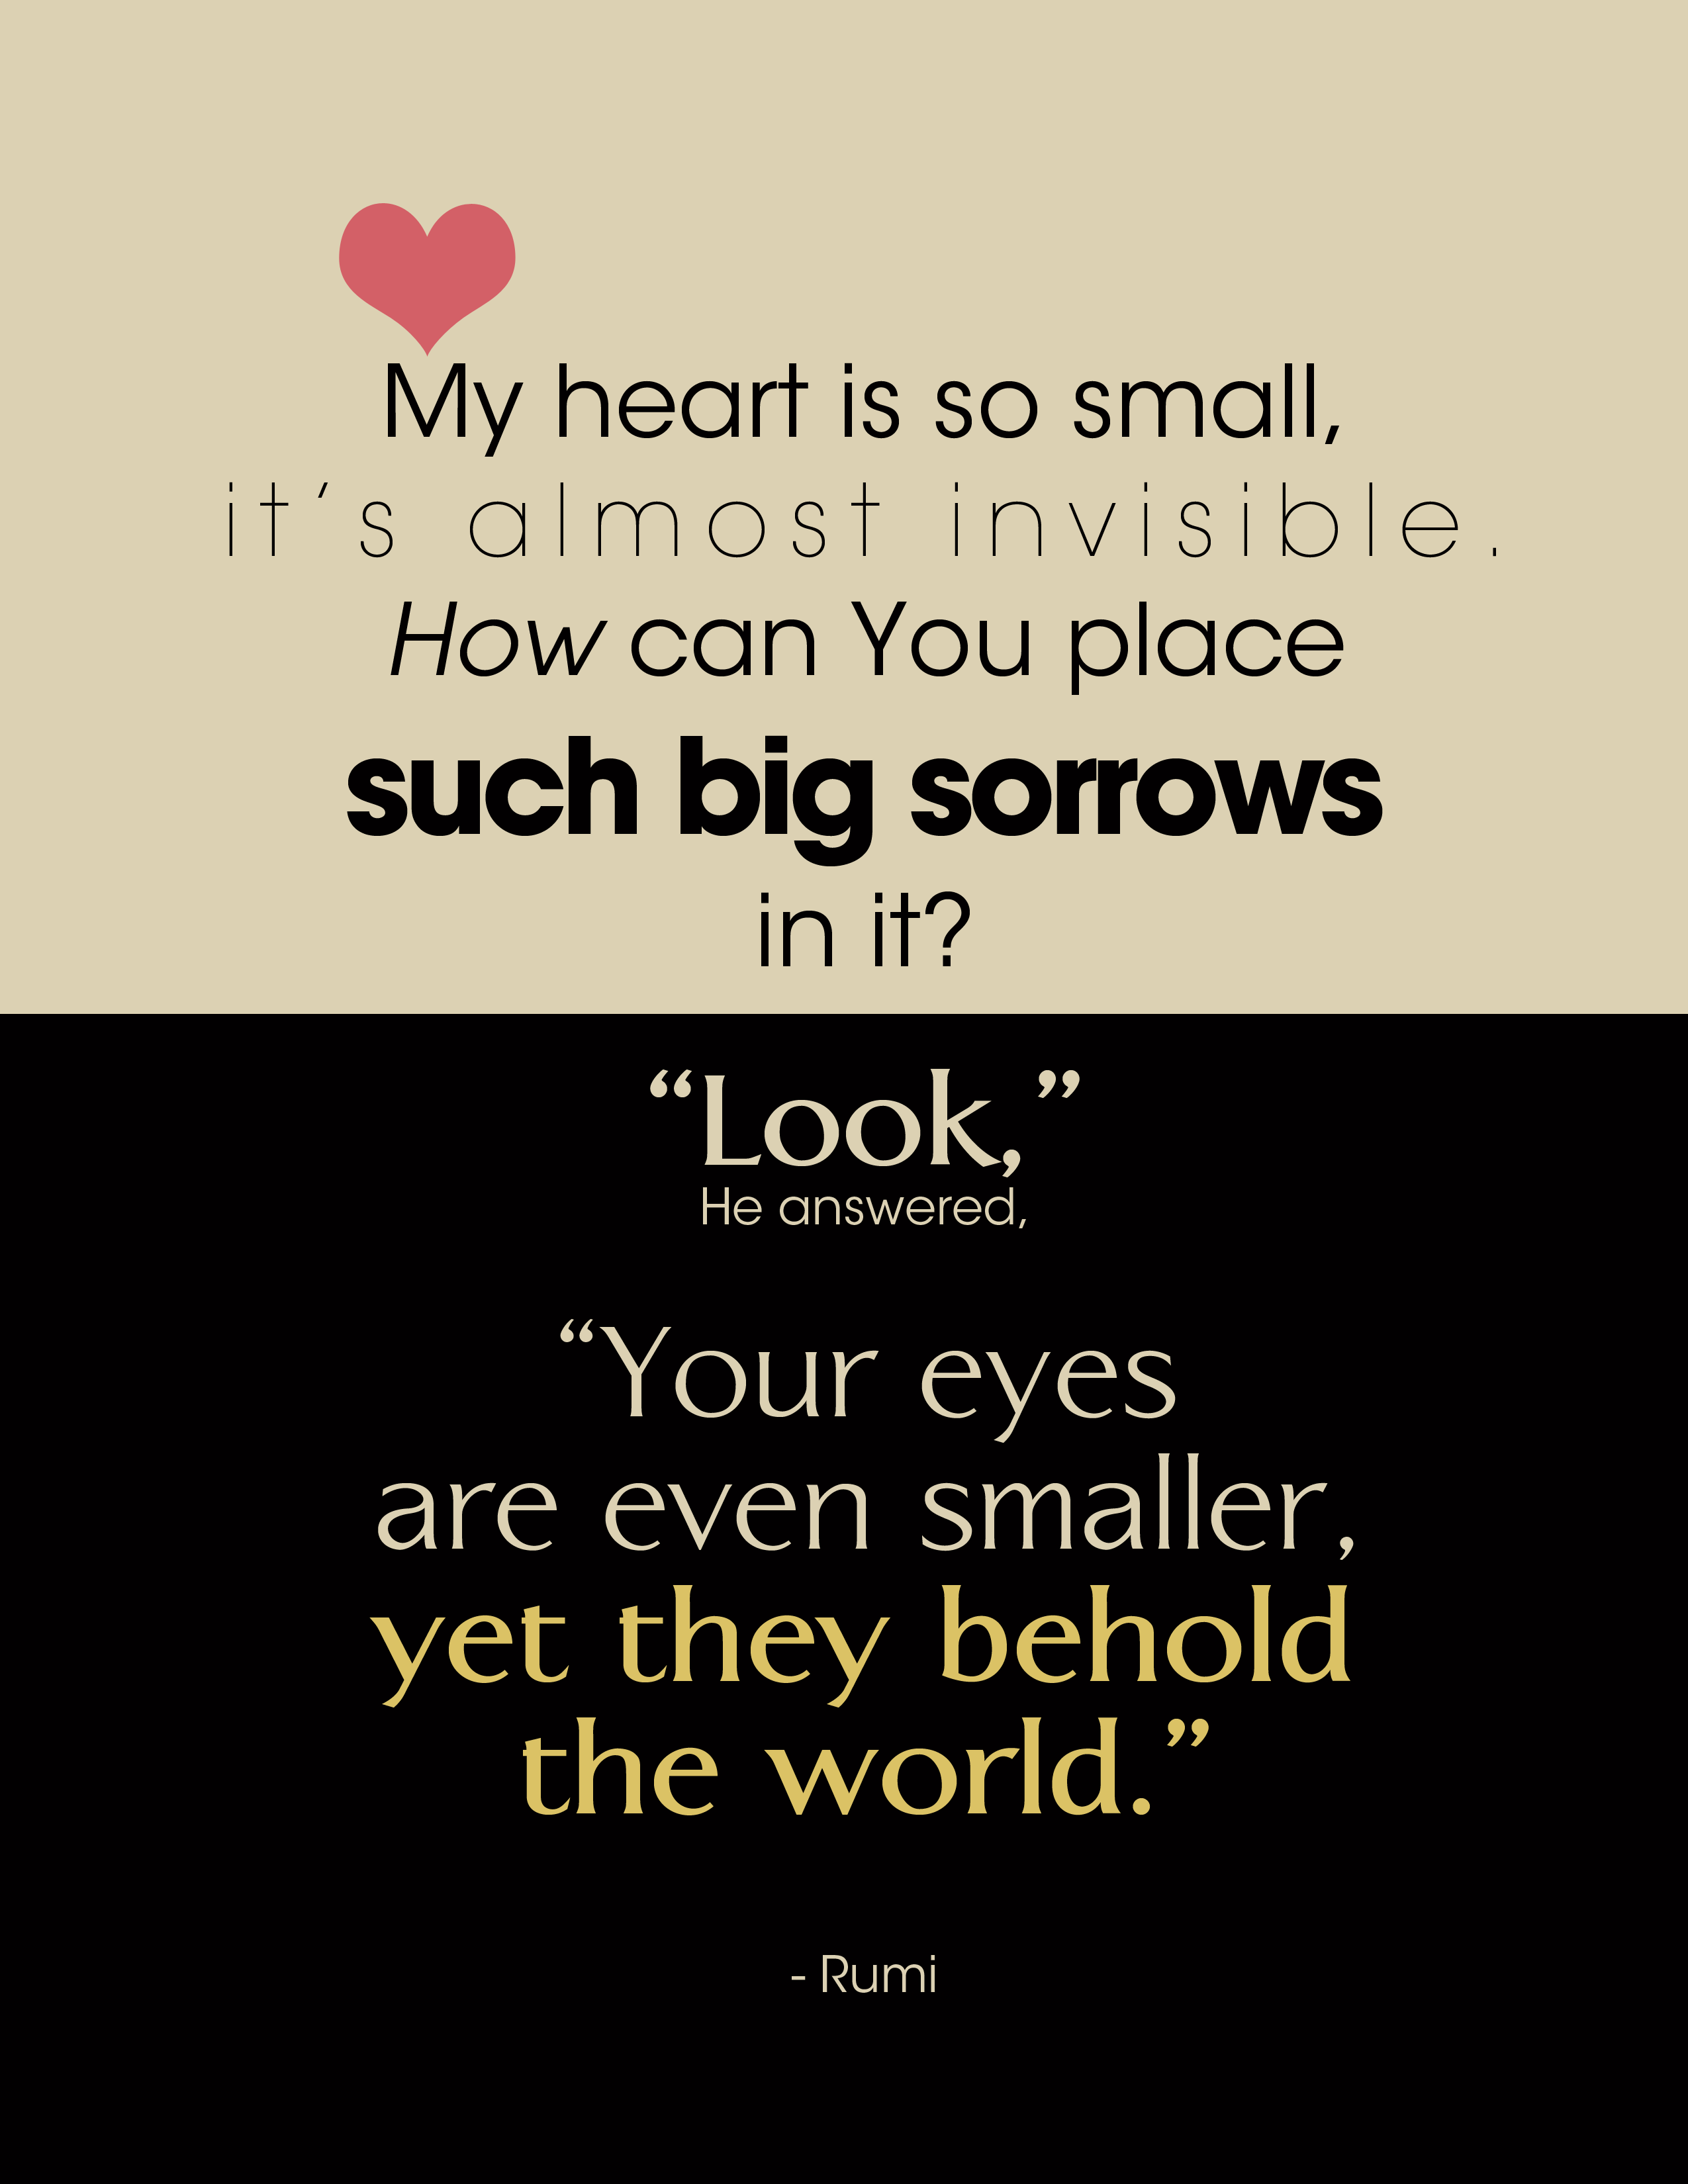 rumi wisdom quotes and proverbs pinterest